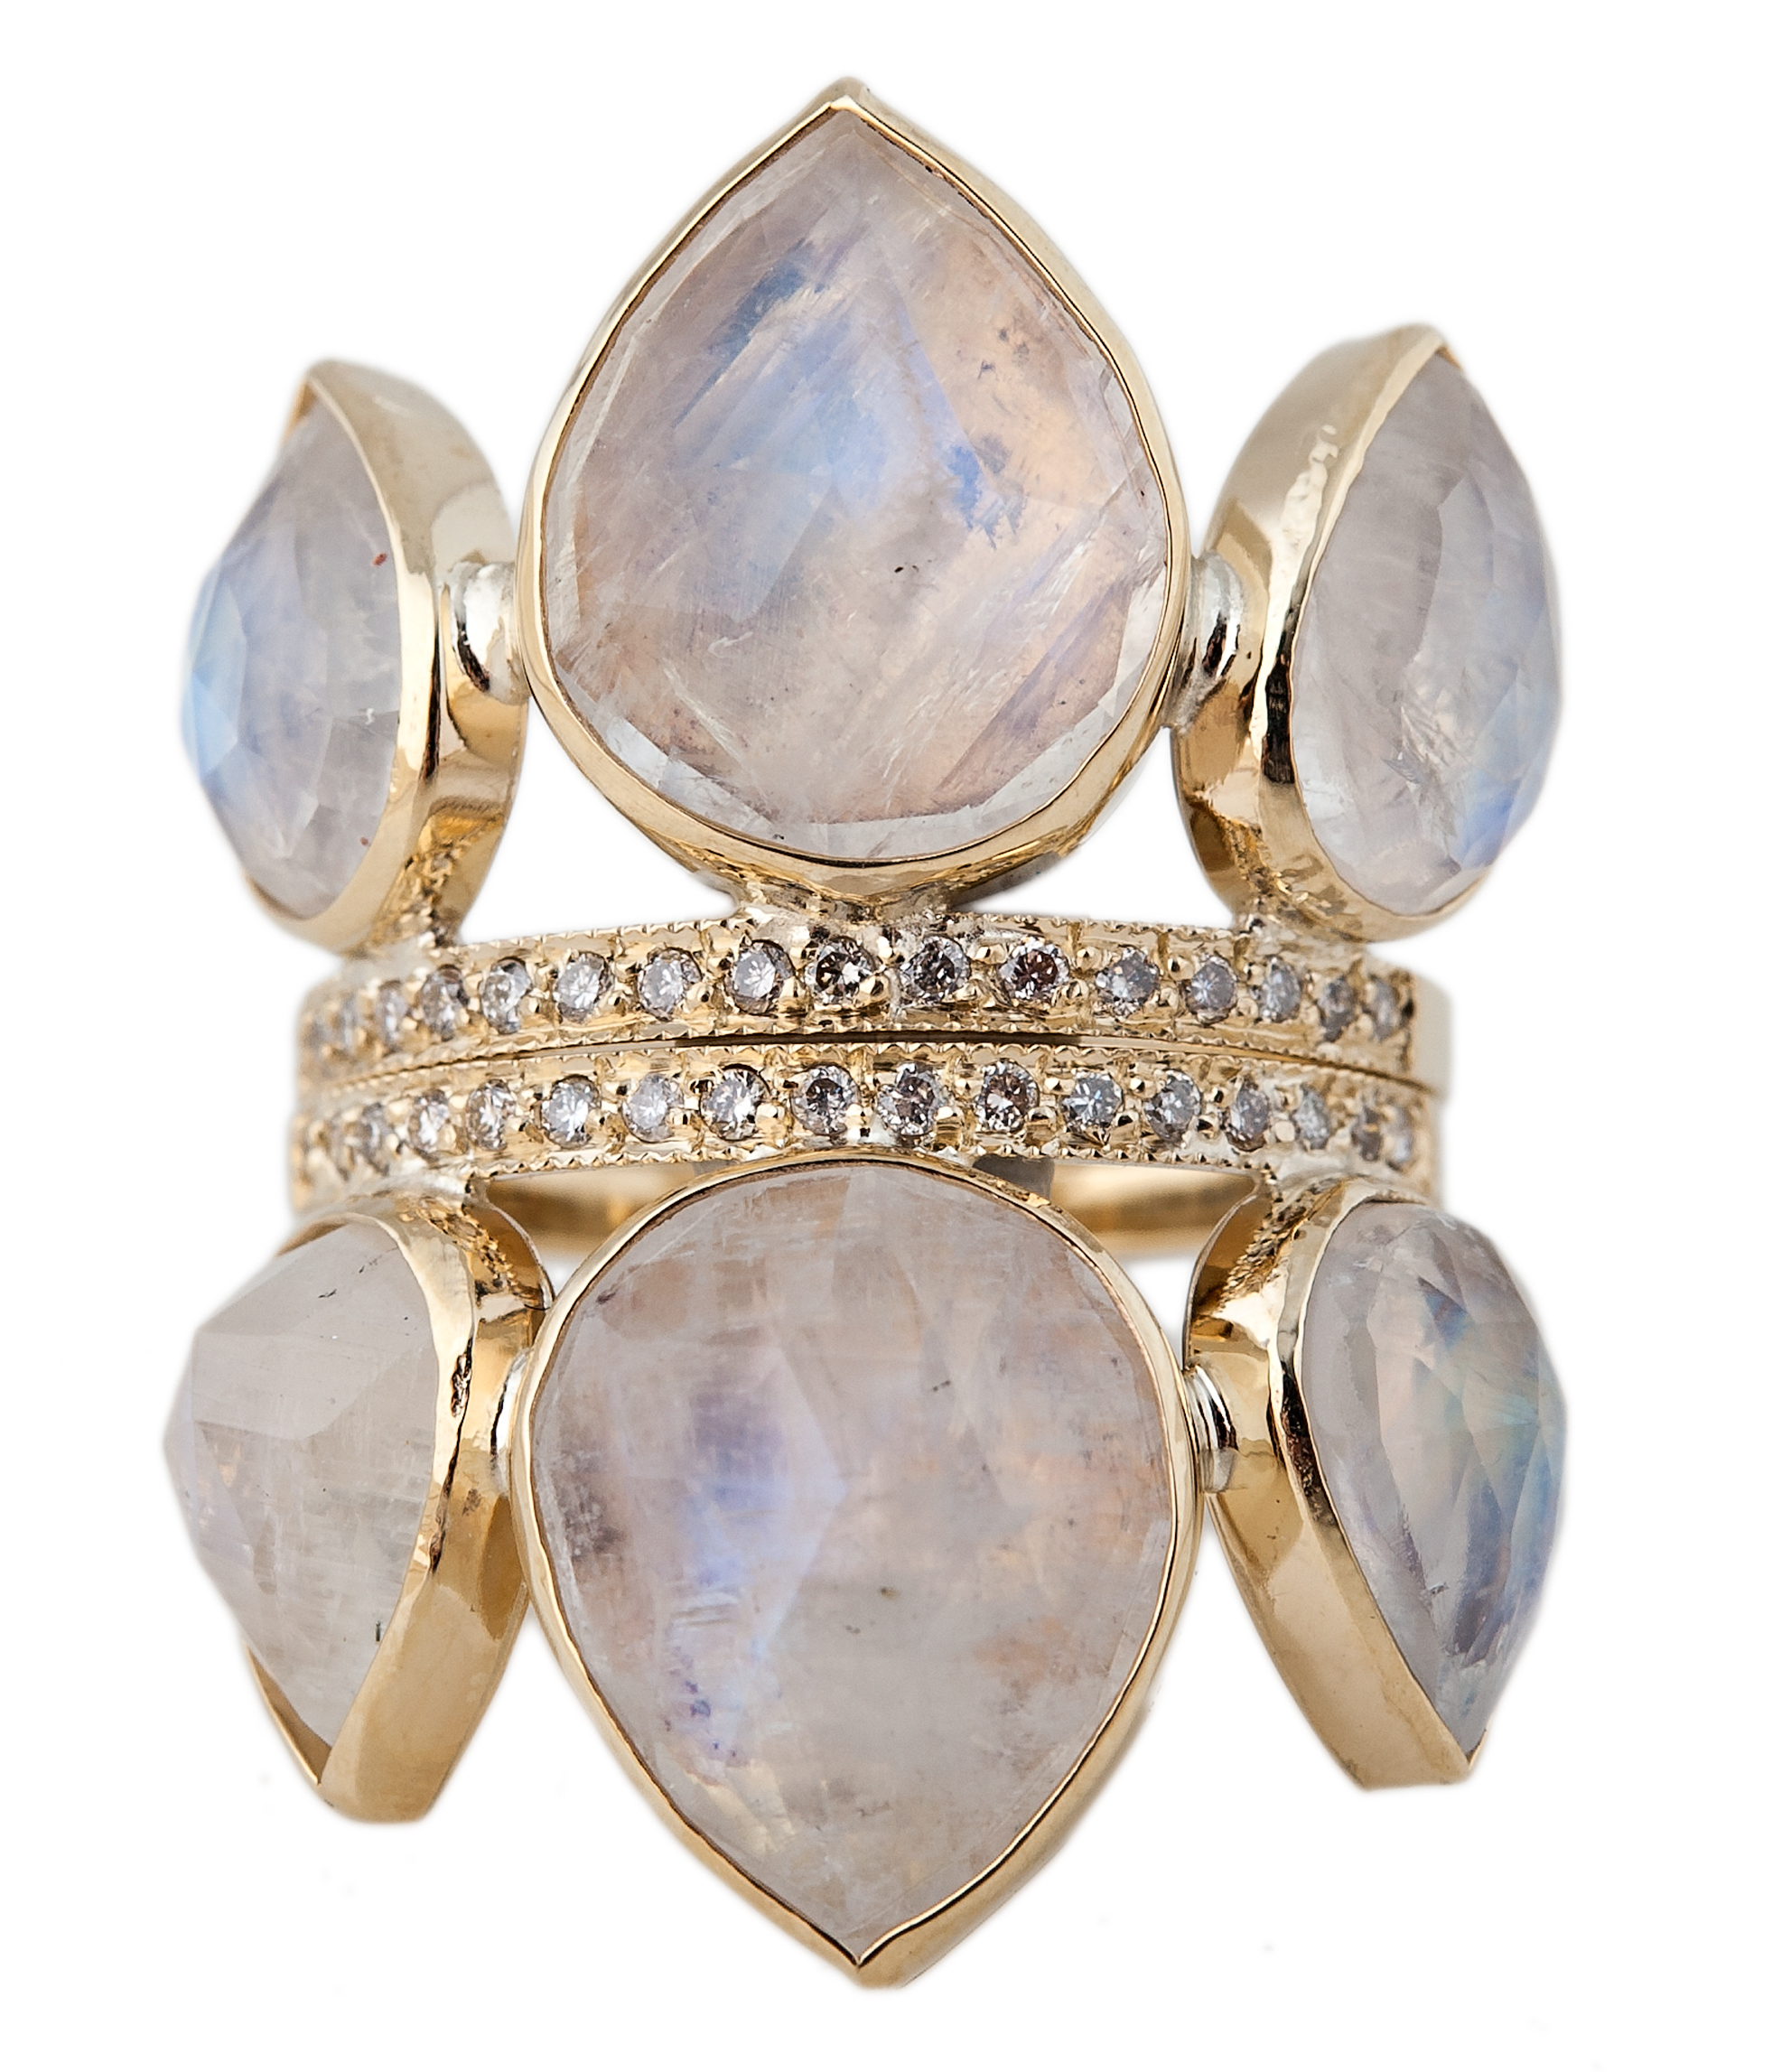 Jacquie Aiche gemstone Petal stack rings | JCK On Your Market